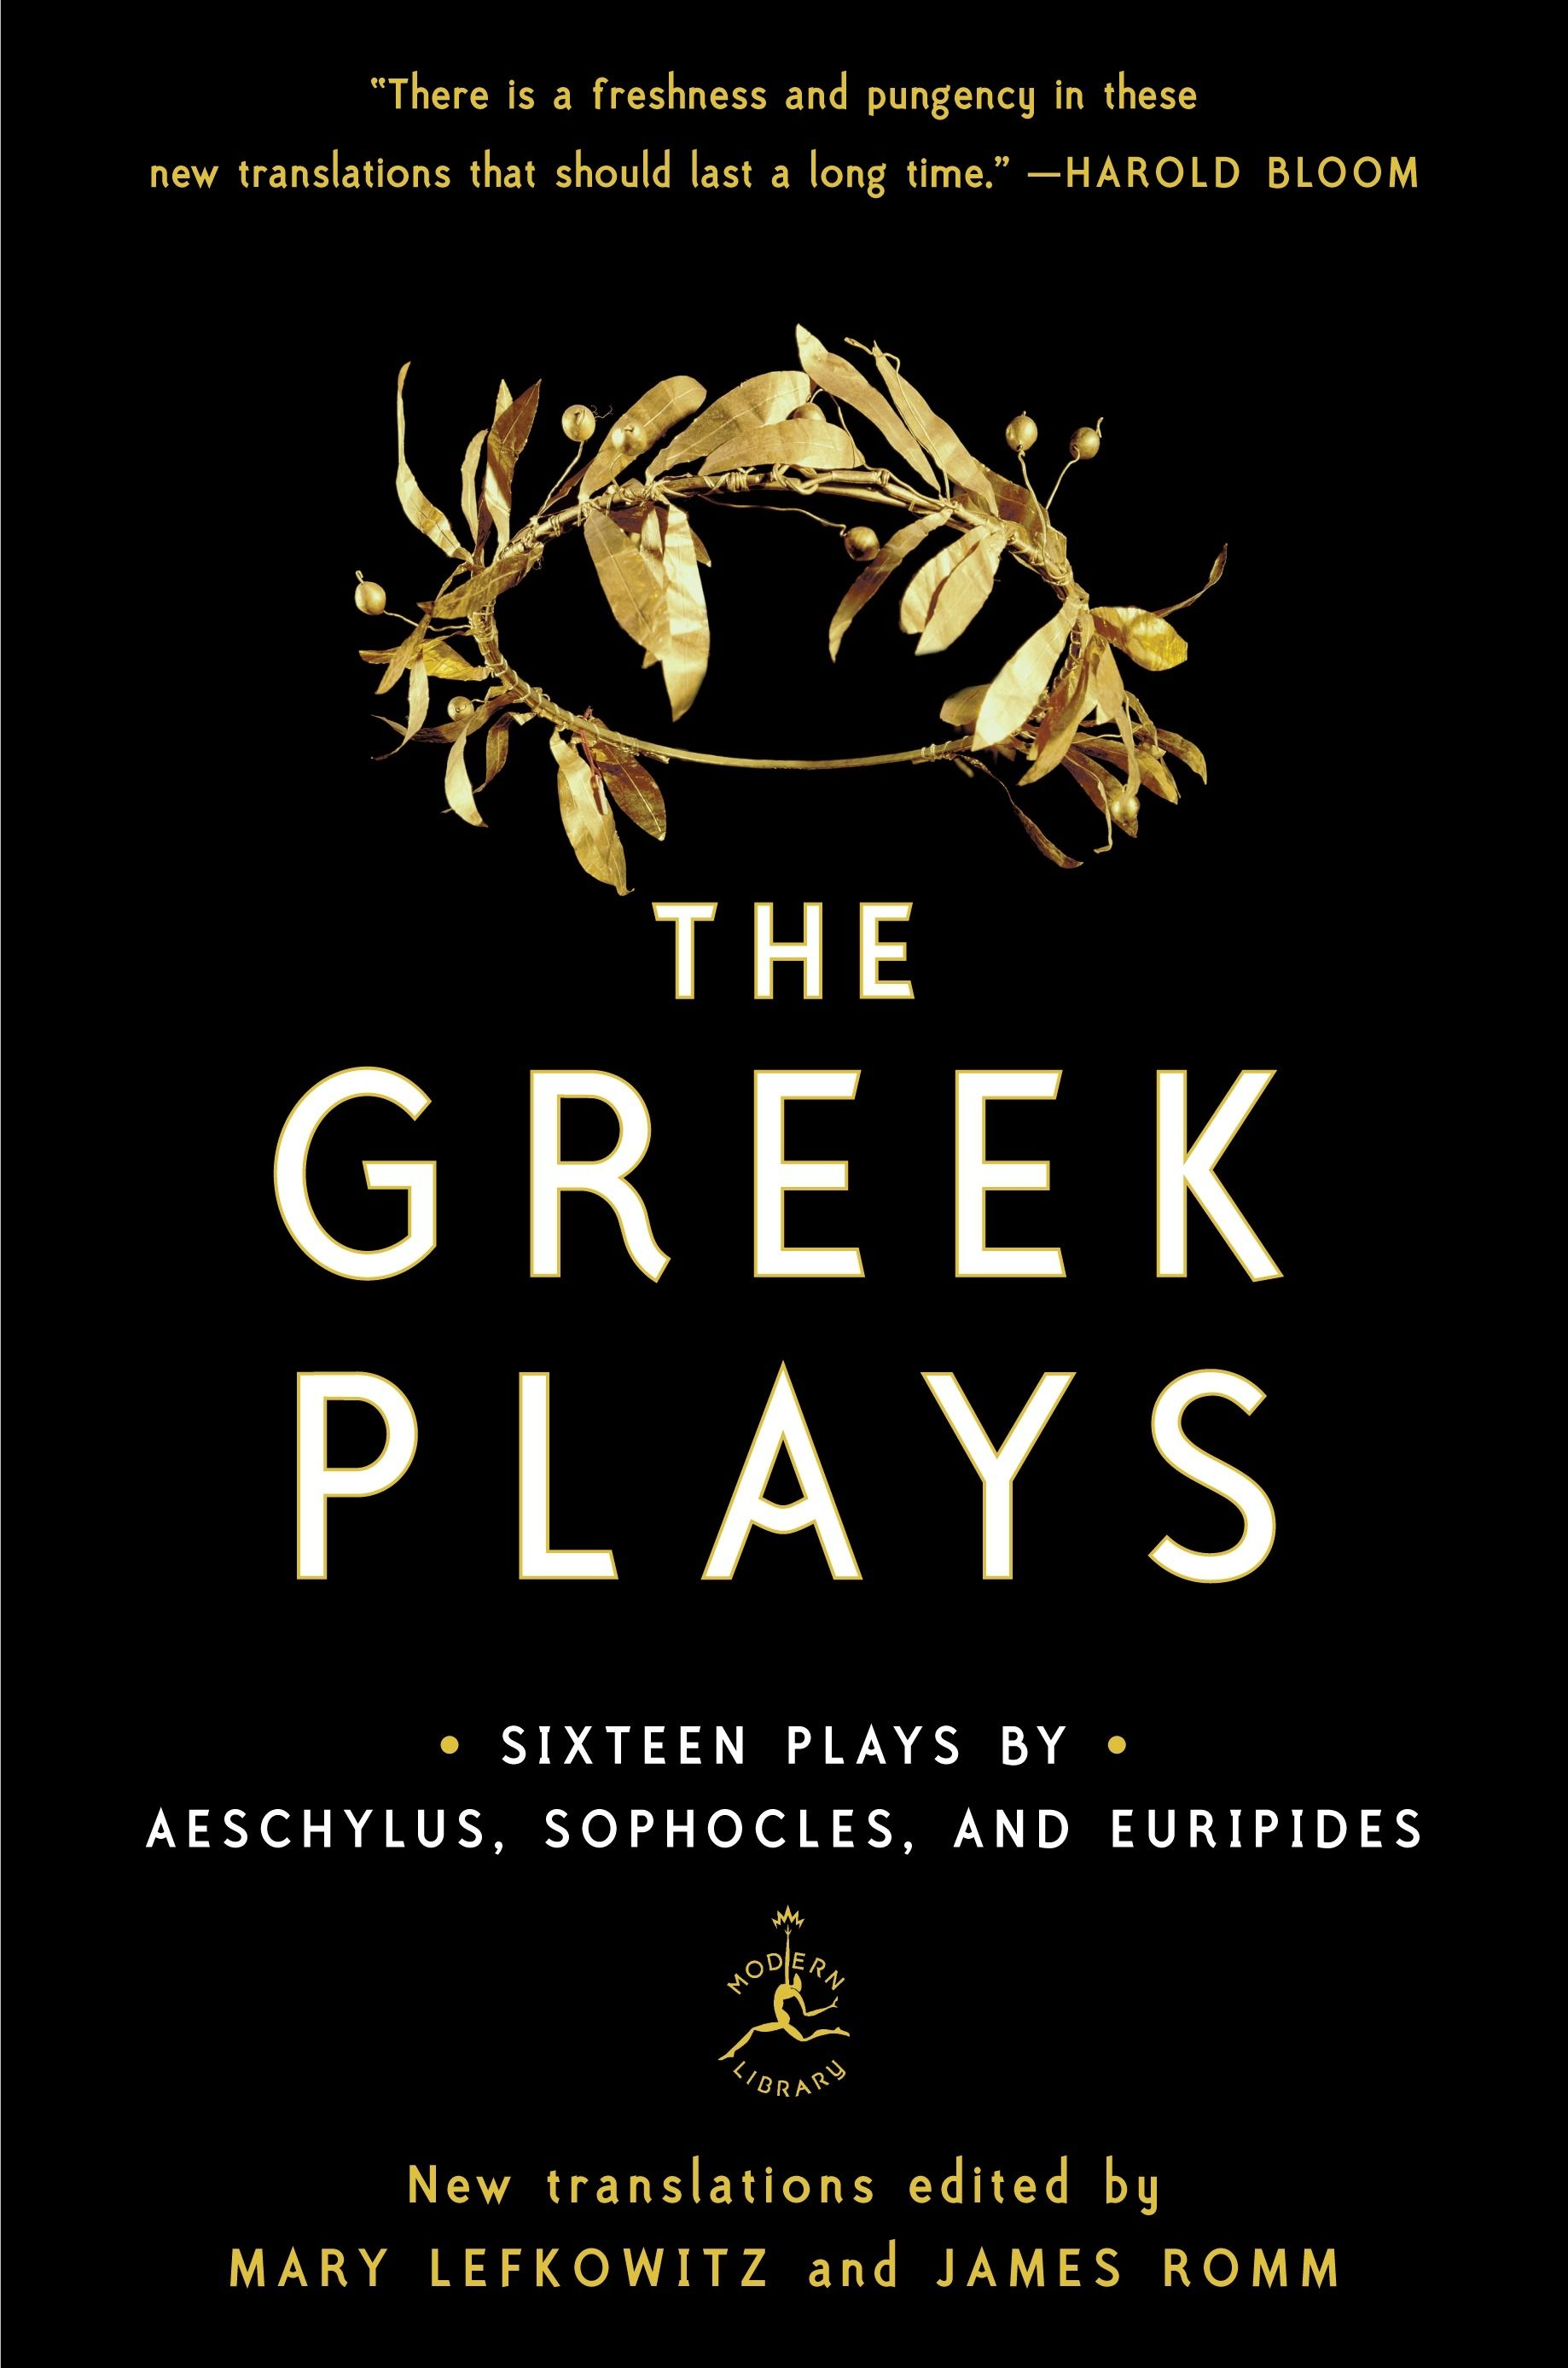 Pin By Dino Sic On Covers Greek Plays Modern Library Best Books To Read